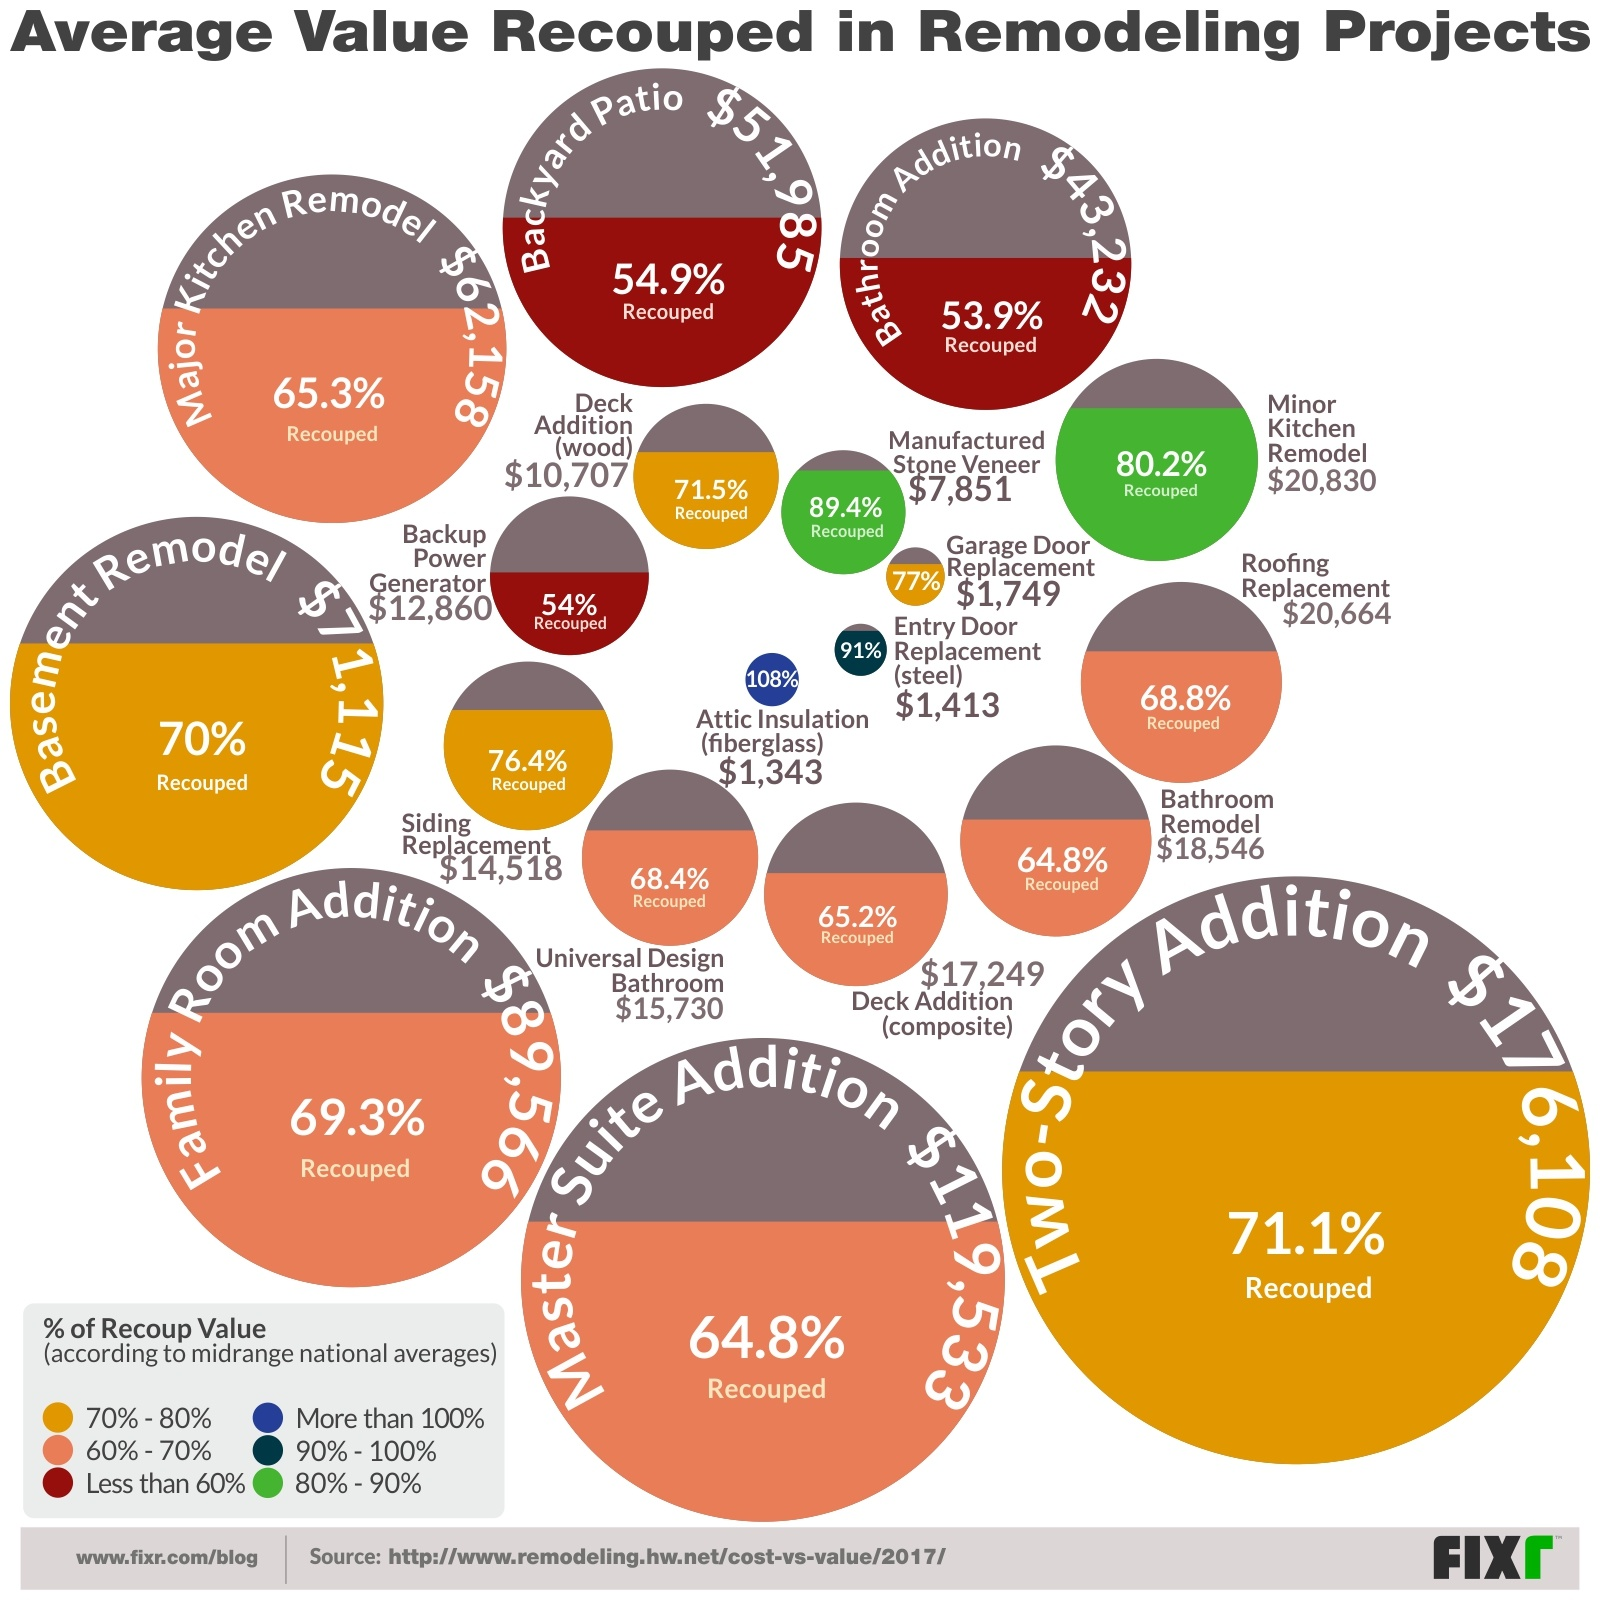 The Remodeling Projects With the Highest Return on Investment in 2017